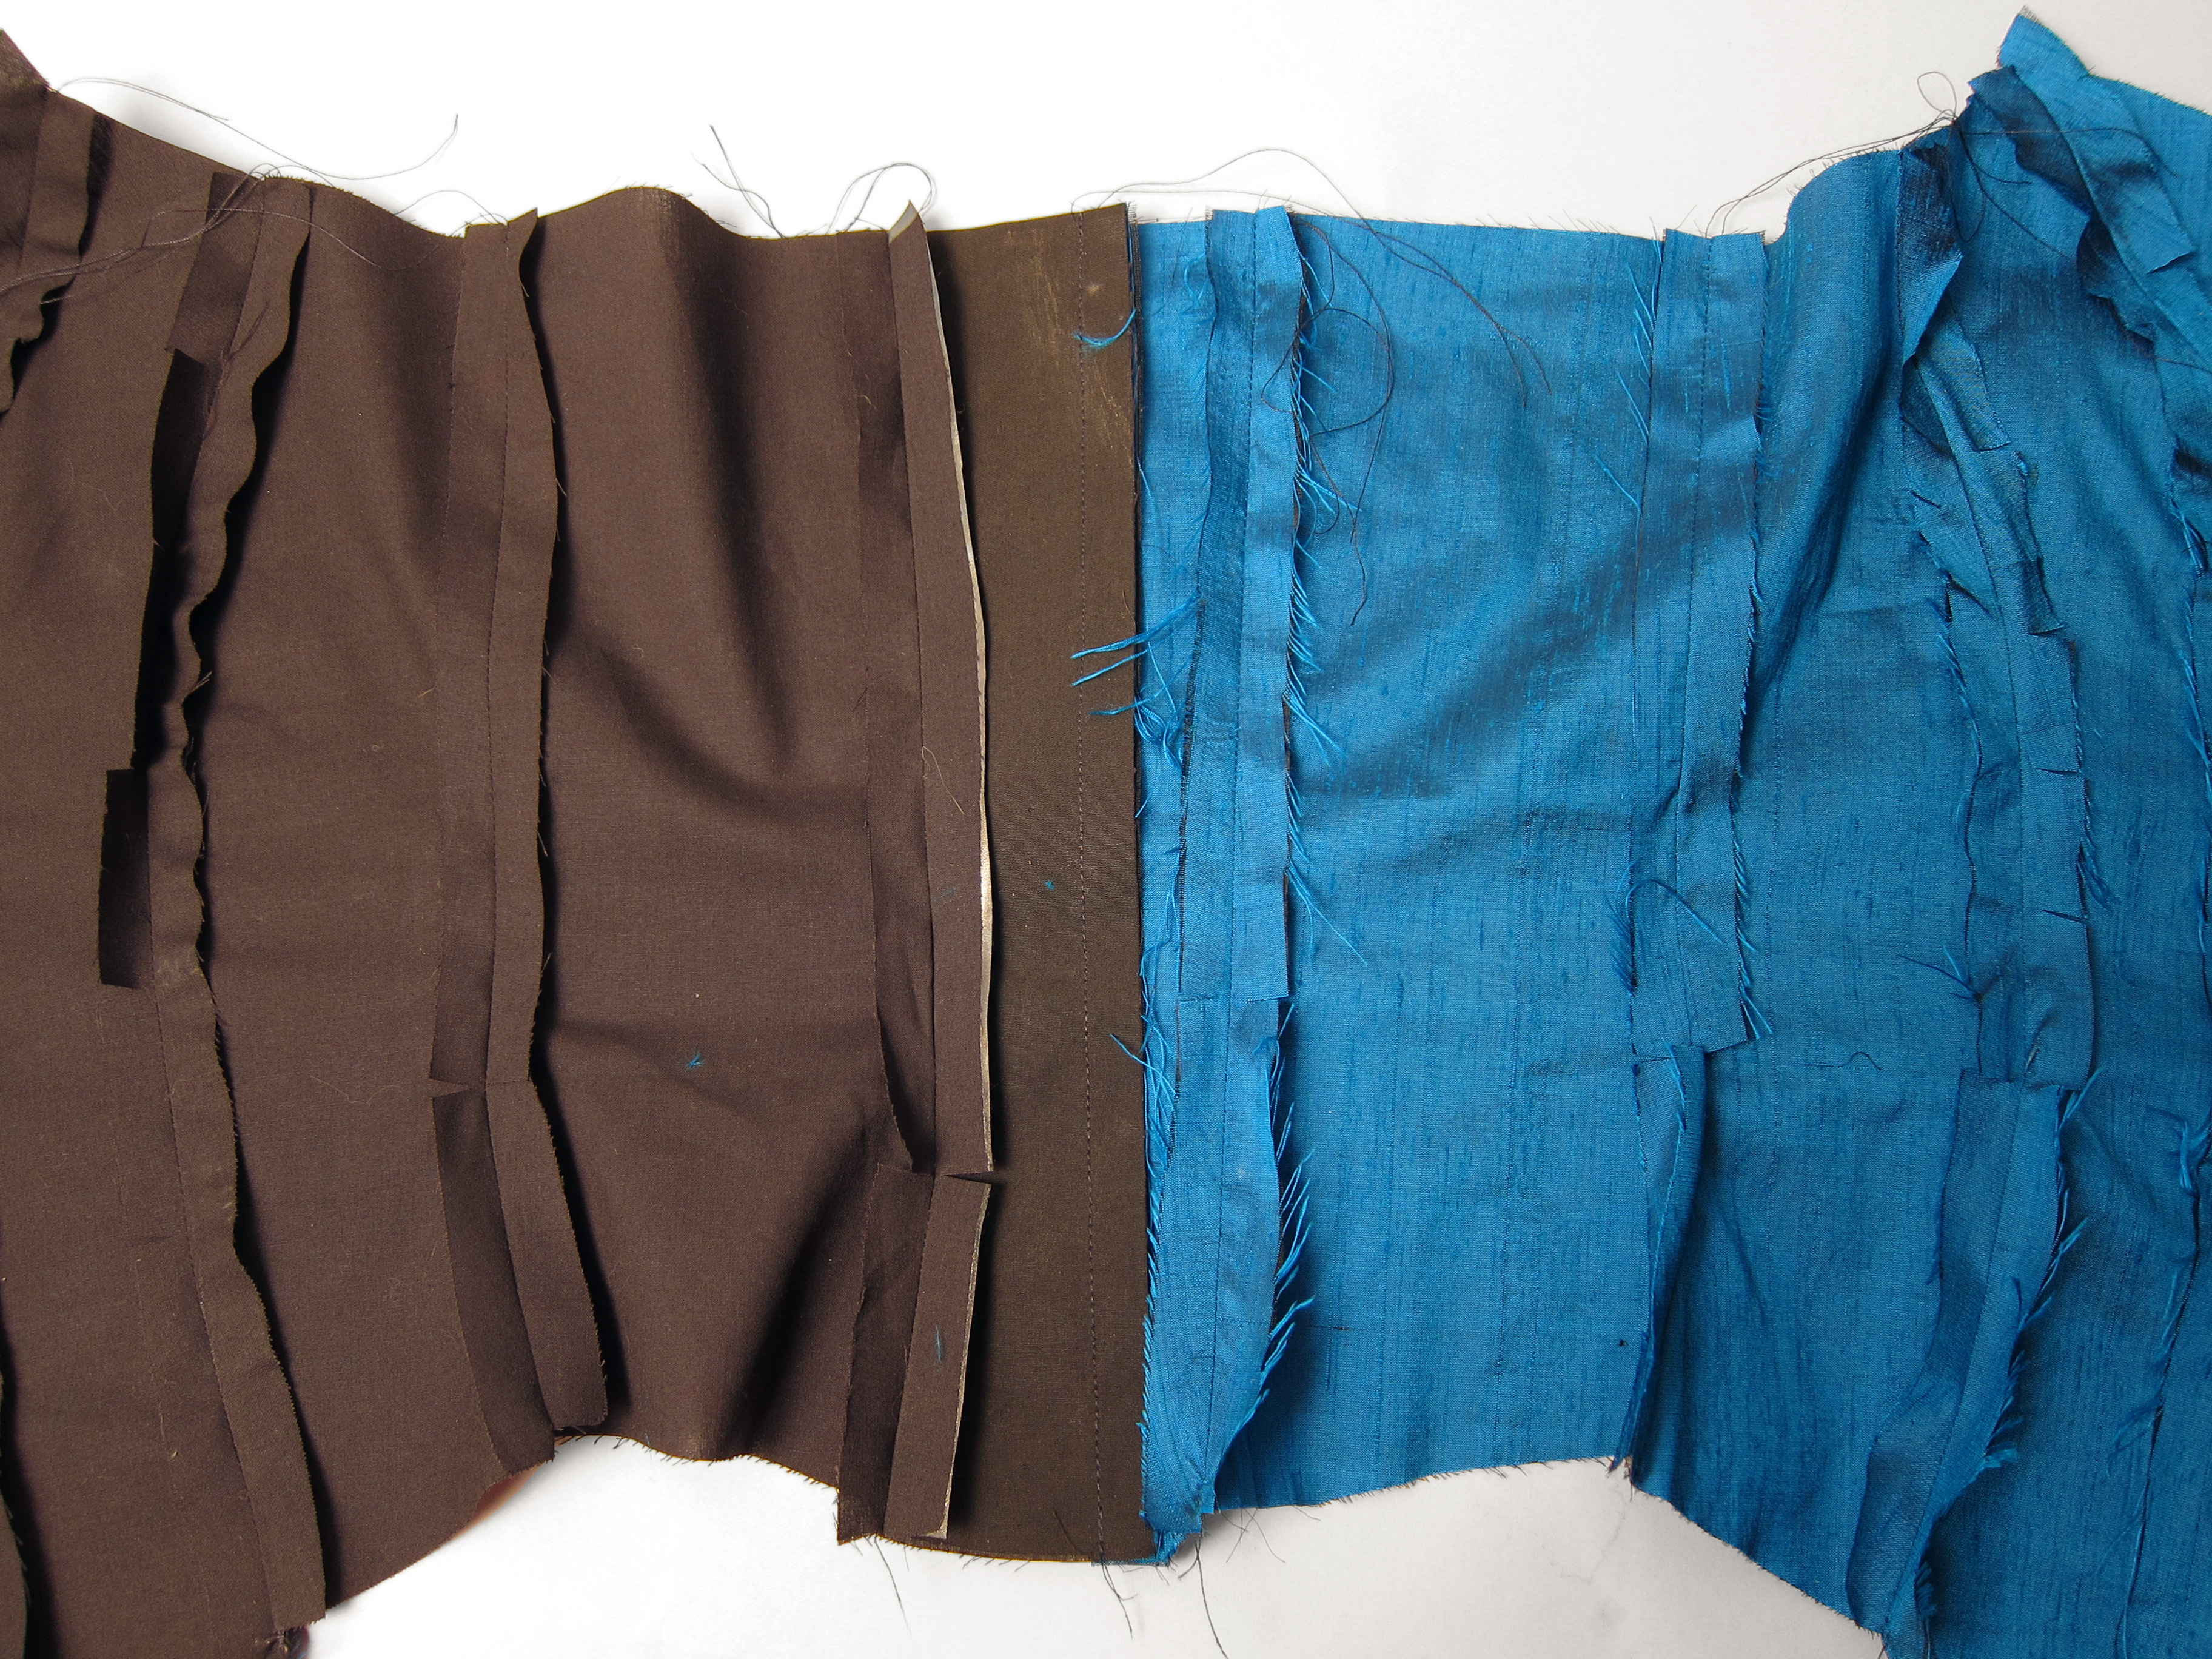 Picture of Sew the Outer Fabric to the Lining Fabric